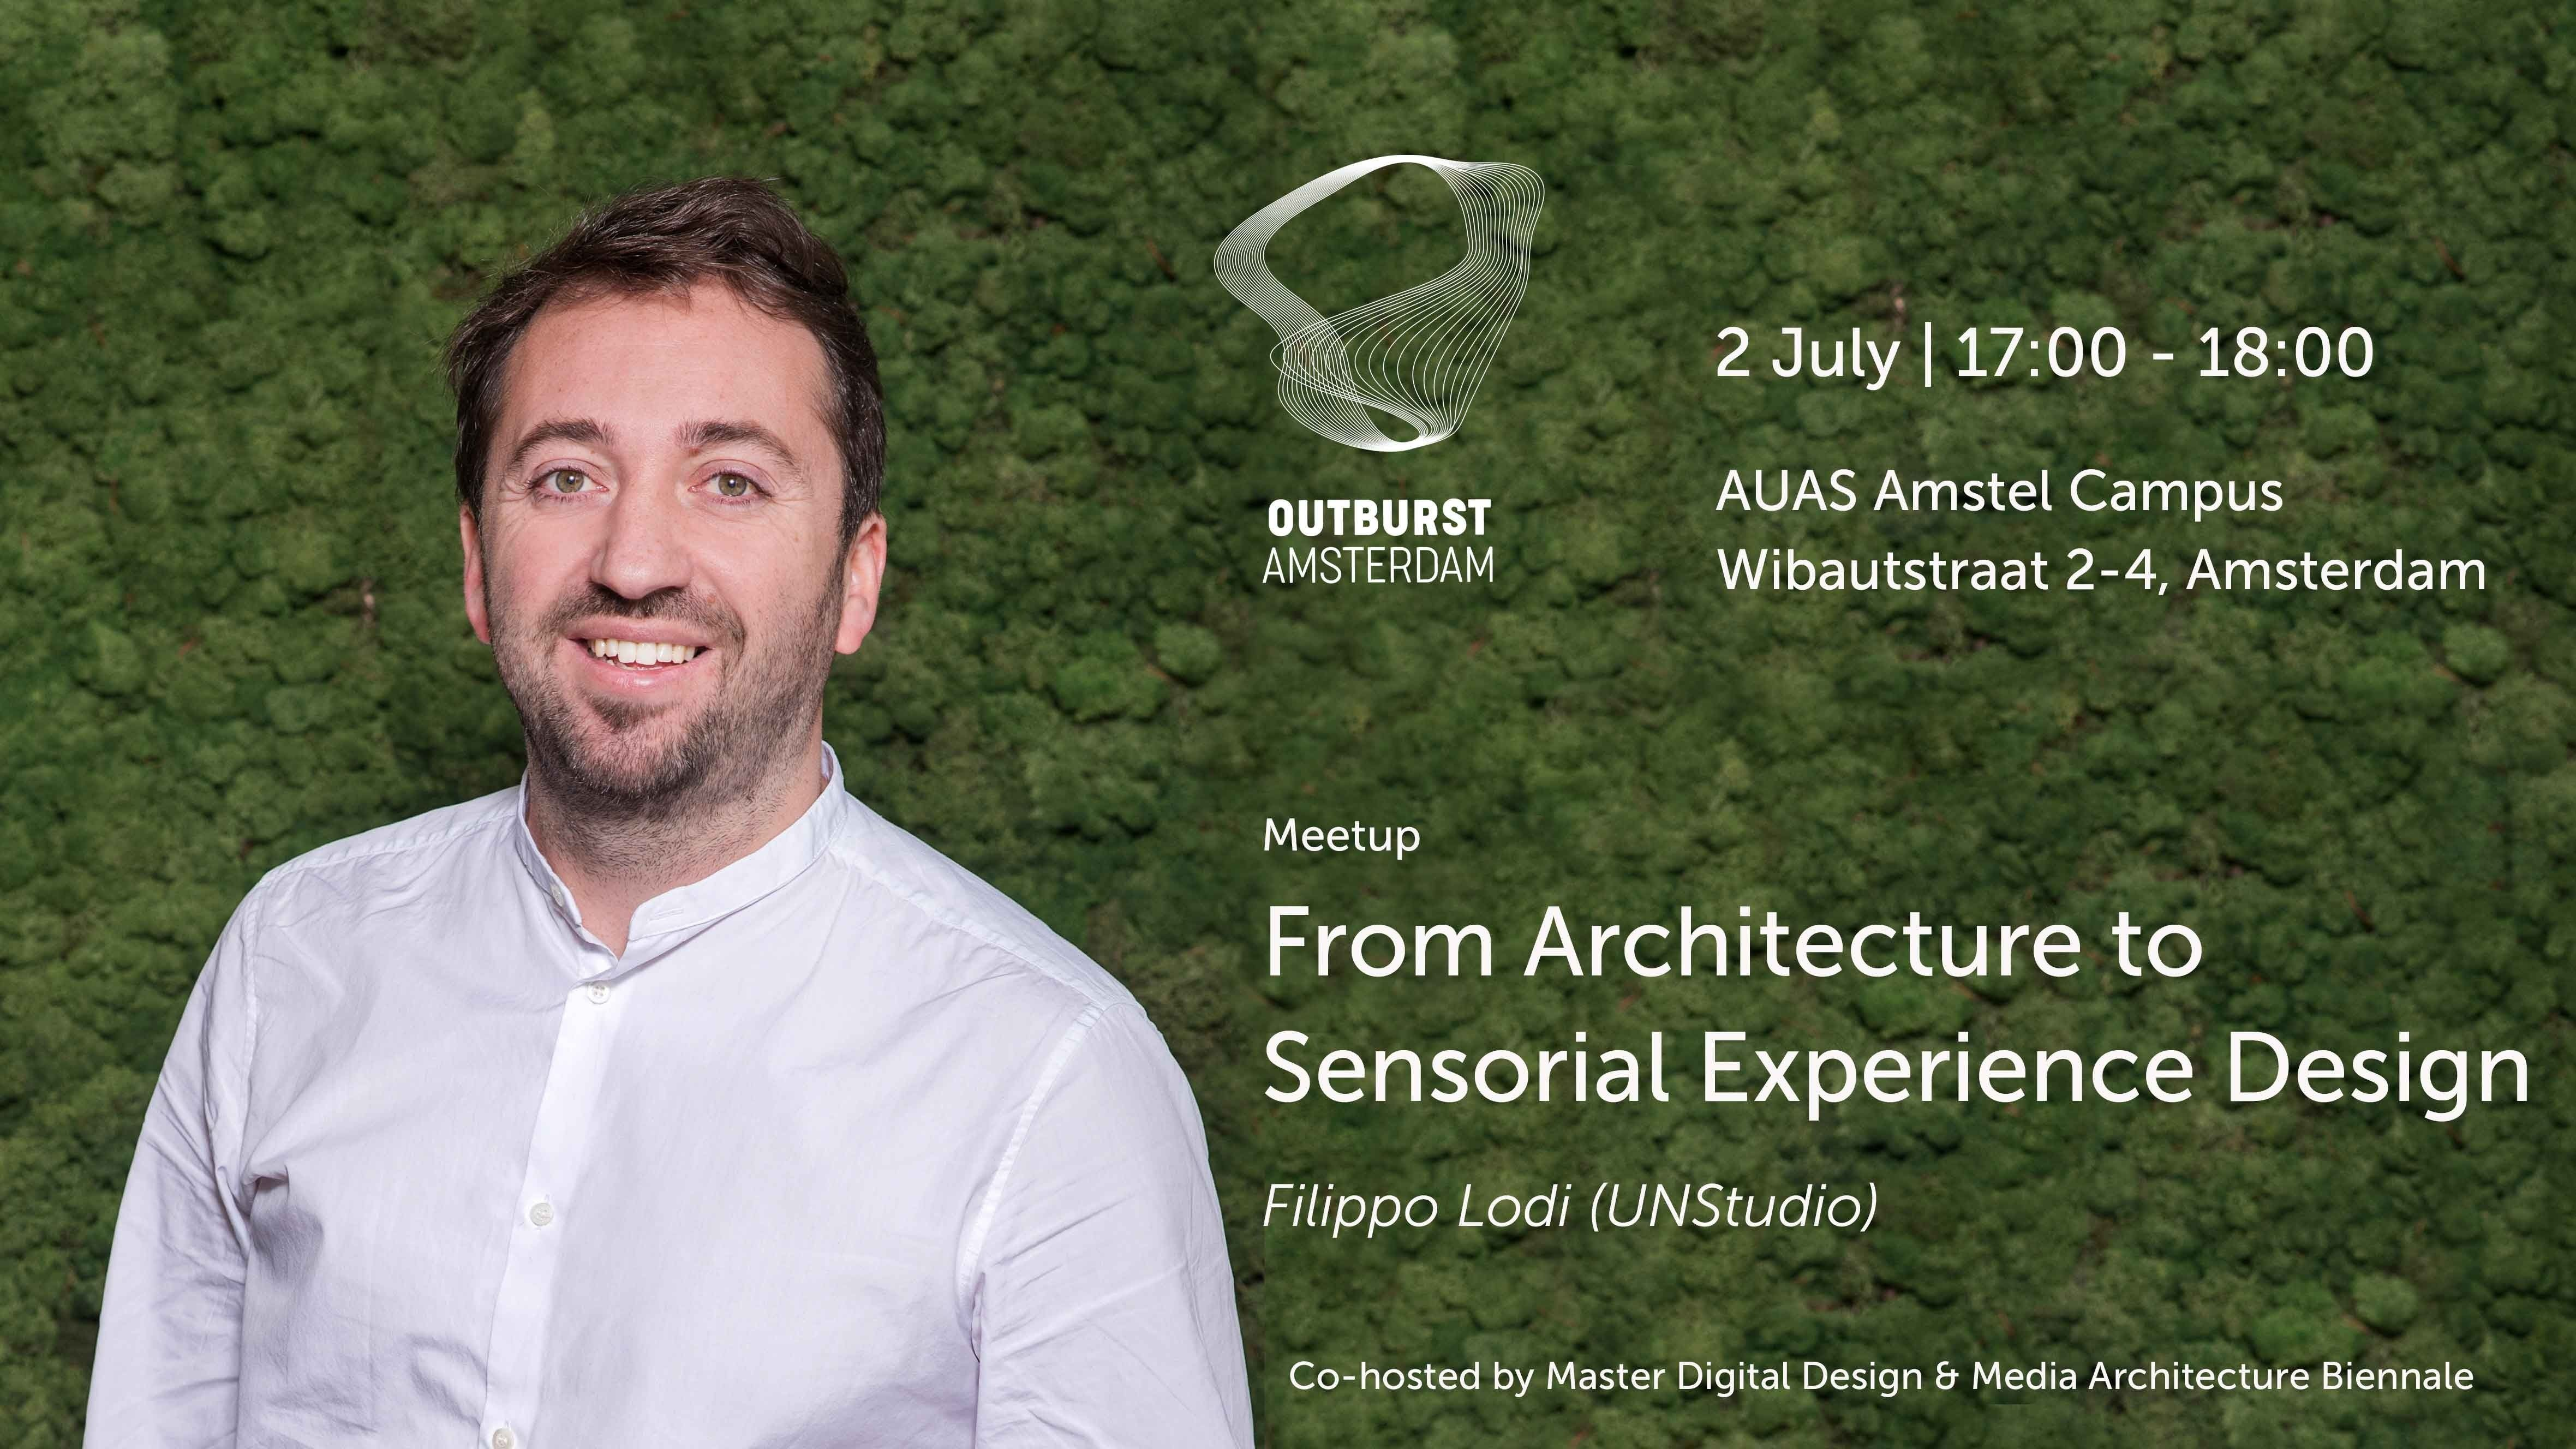 July 2 2019 MAB & MDD Meetup with Filippo Lodi (UNStudio): From Architecture to Sensorial Experience Design